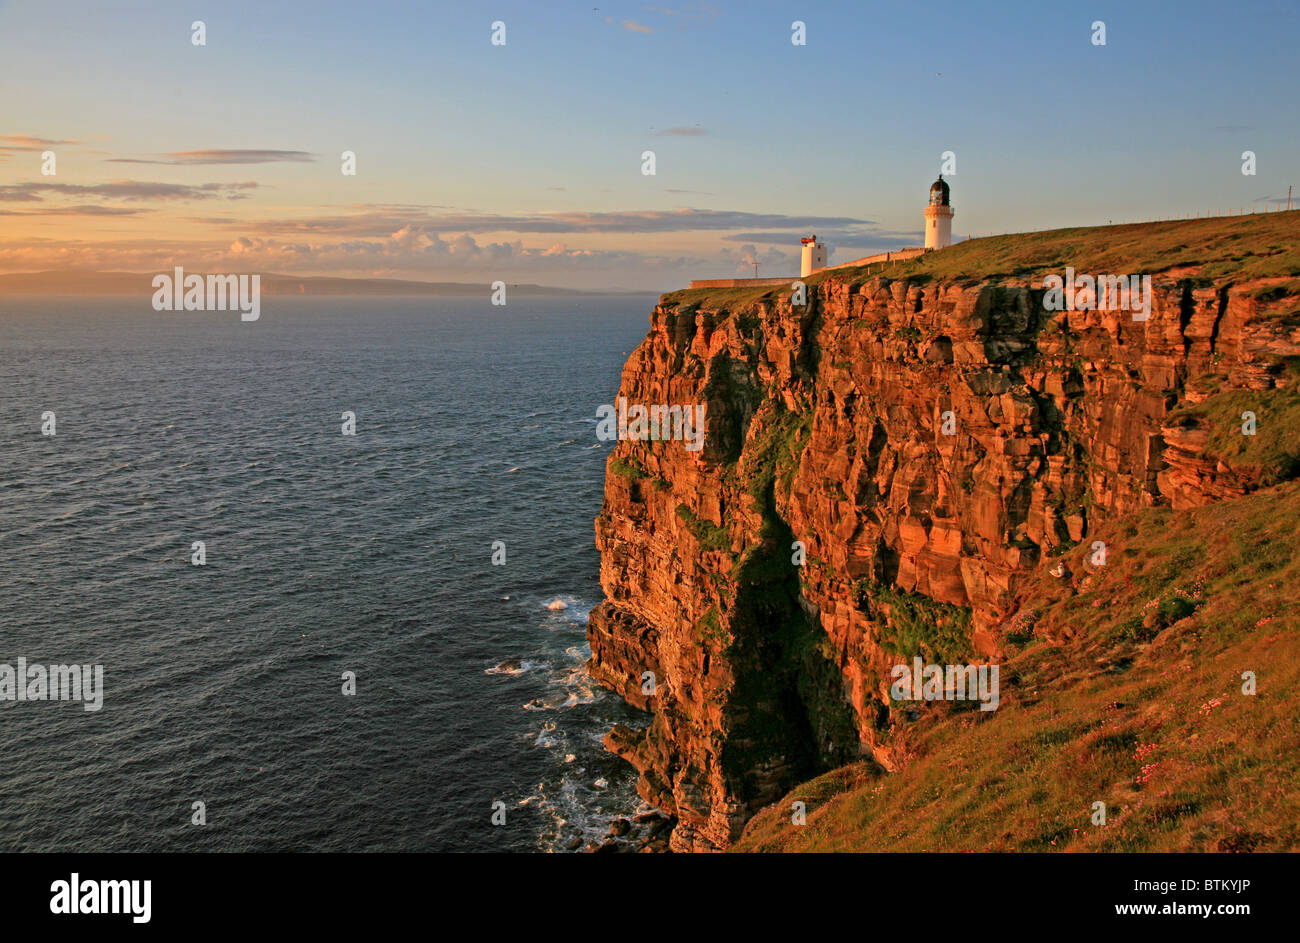 Evening light on the cliffs looking over the Pentland Firth to Orkney and the Island of Hoy Stock Photo